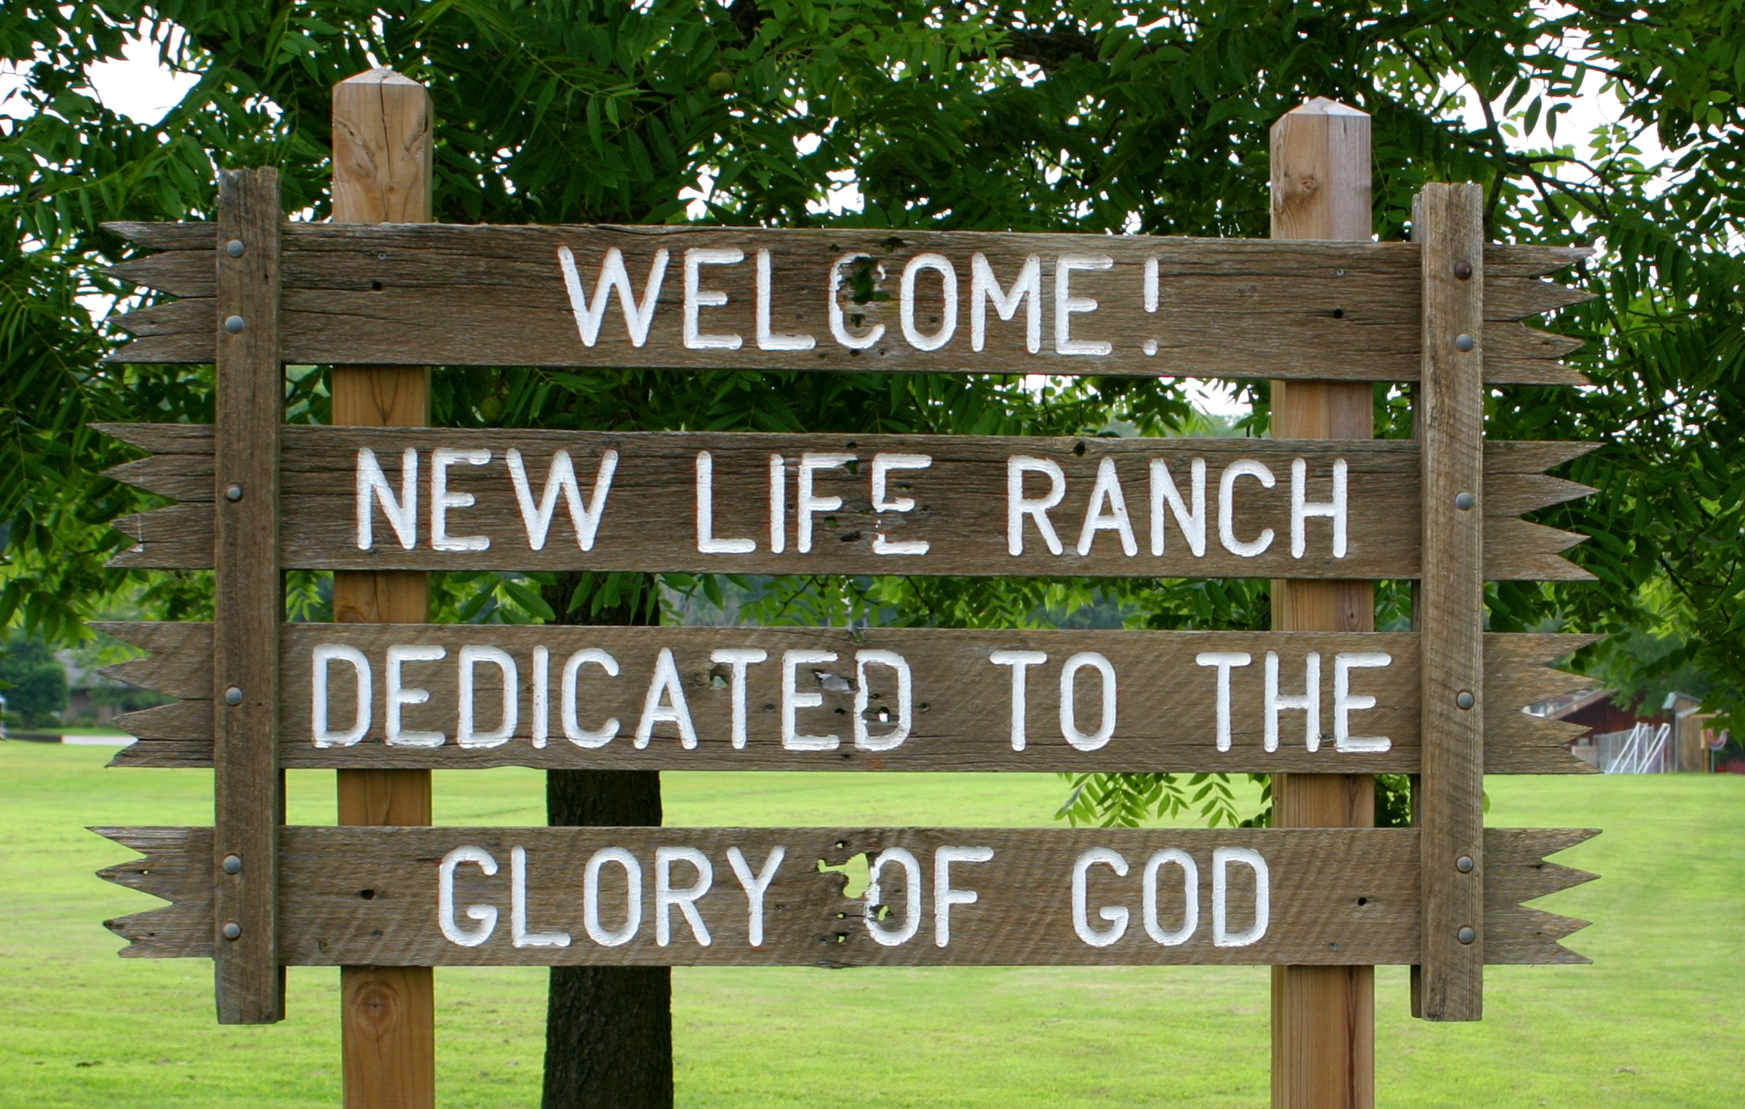 New life ranch sign